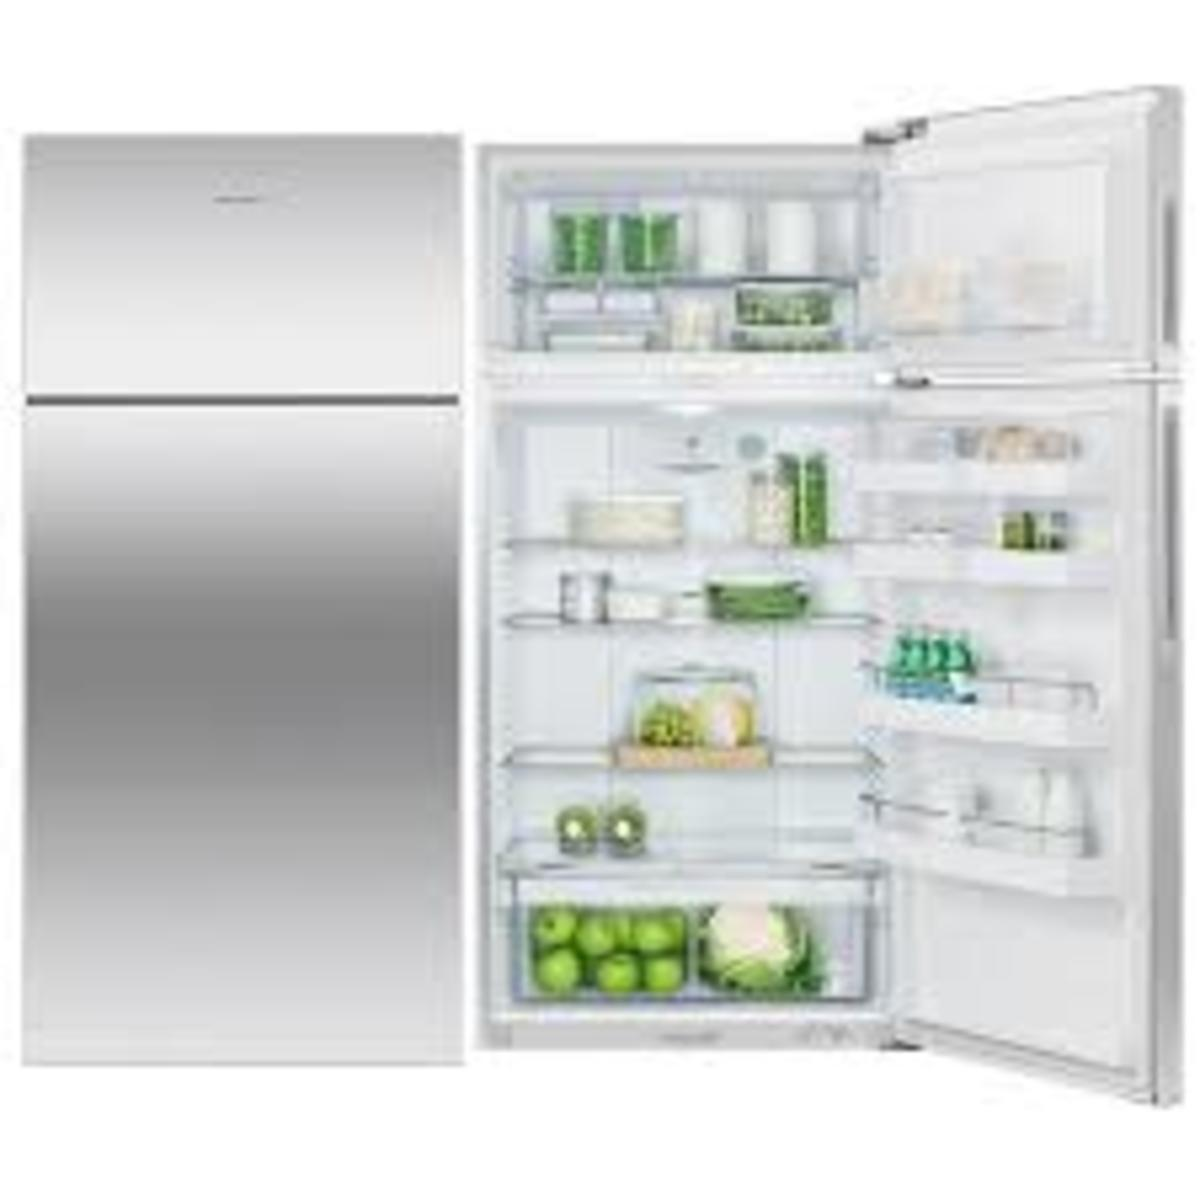 RF521TRPX6  517L Top Freezer Refrigerator  Hong Kong Warranty Genuine Products